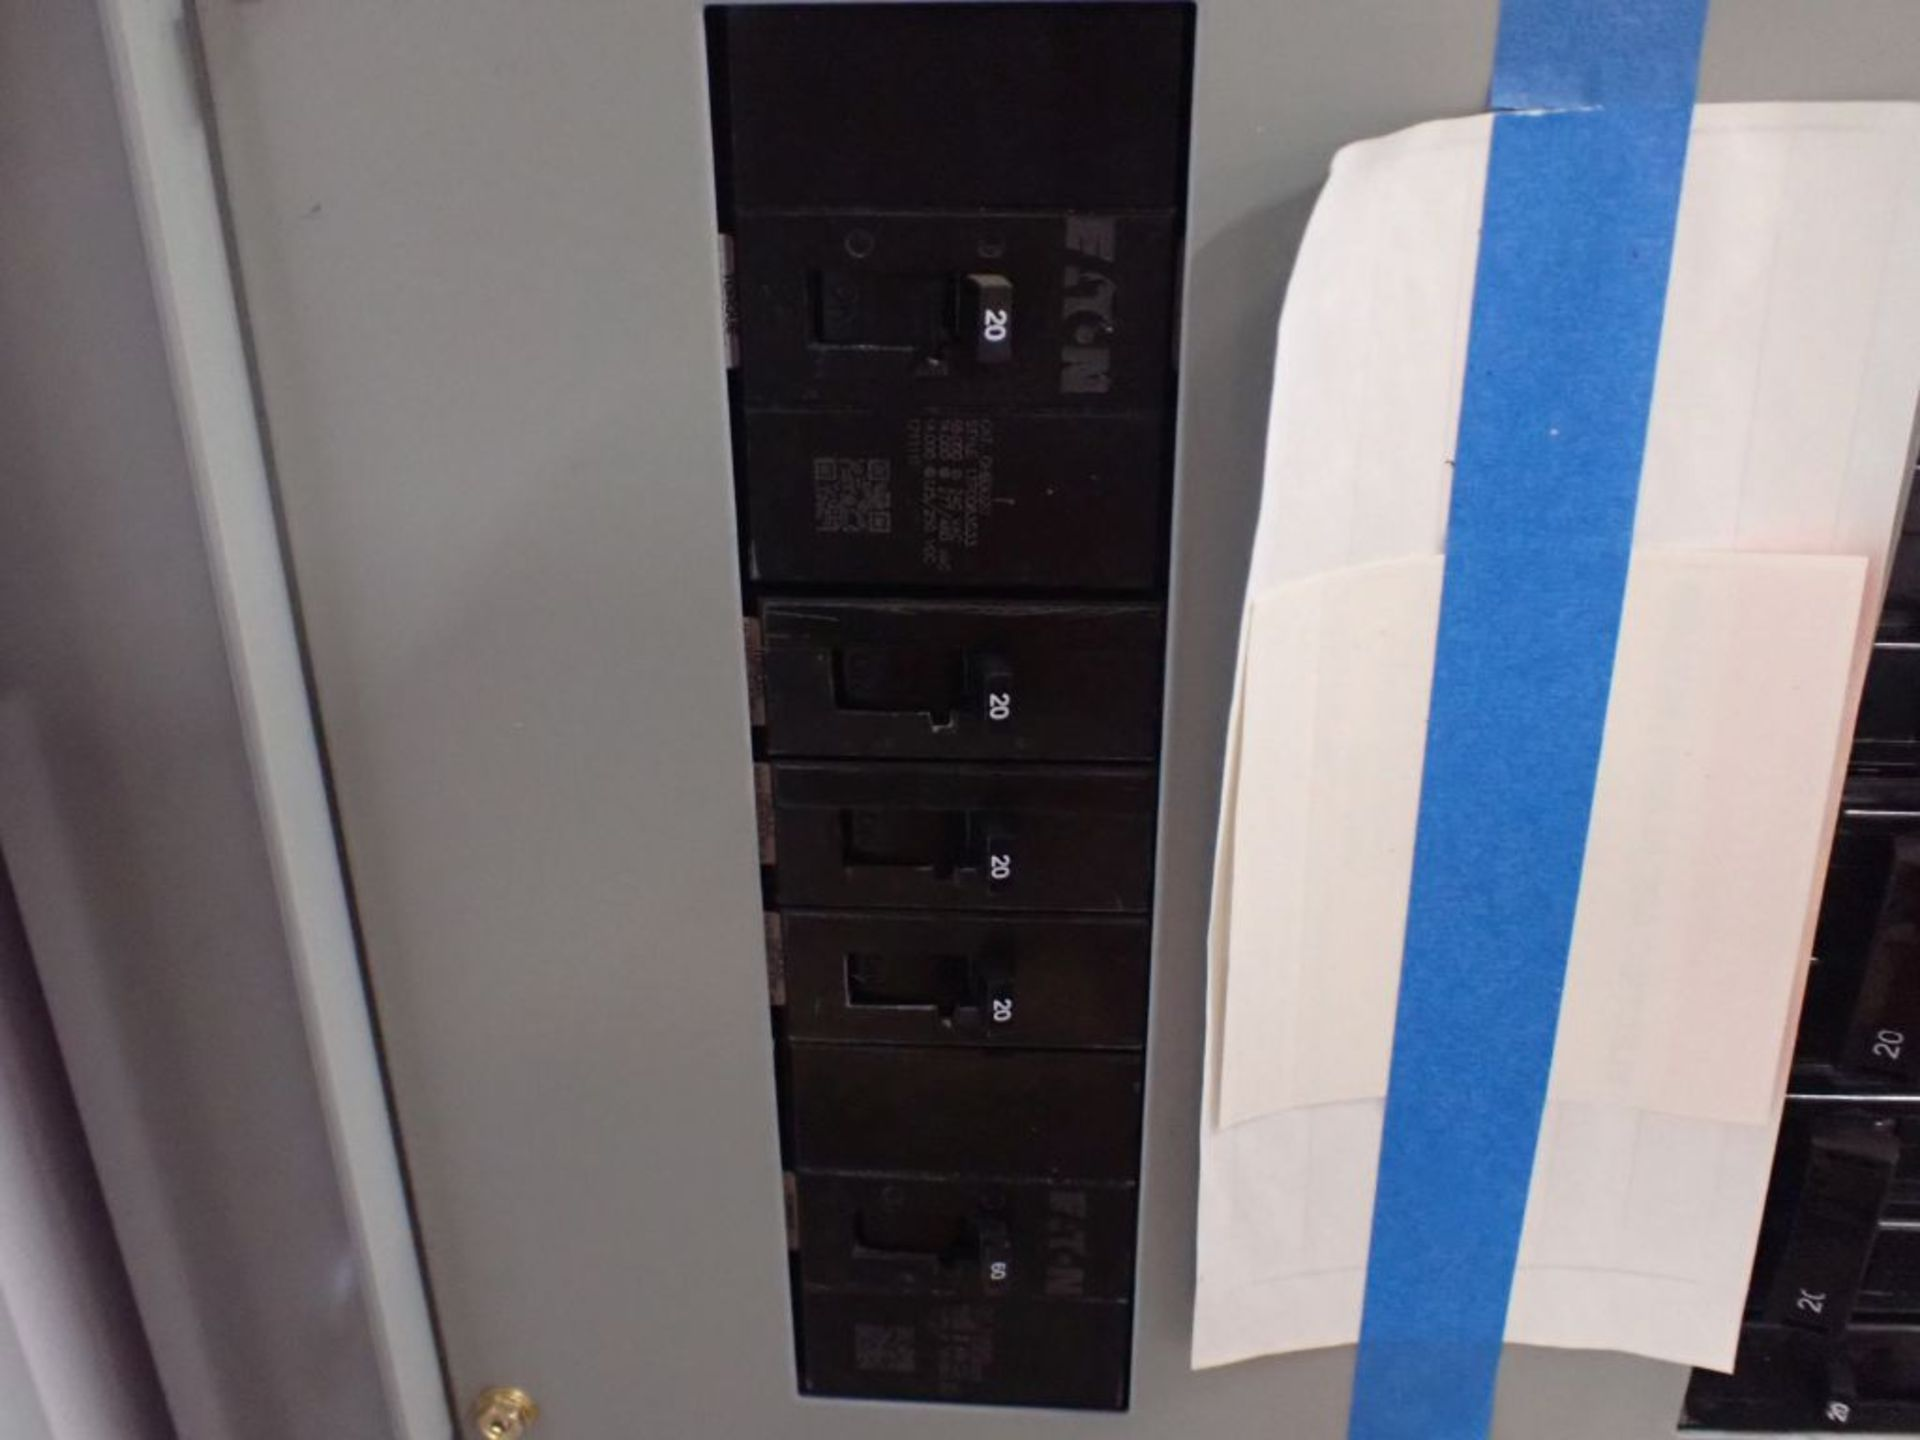 Eaton Freedom 2100 Series Motor Control Center   (2) F206-15A-10HP; (1) F206-30A-10HP; (1) FDRB- - Image 55 of 61